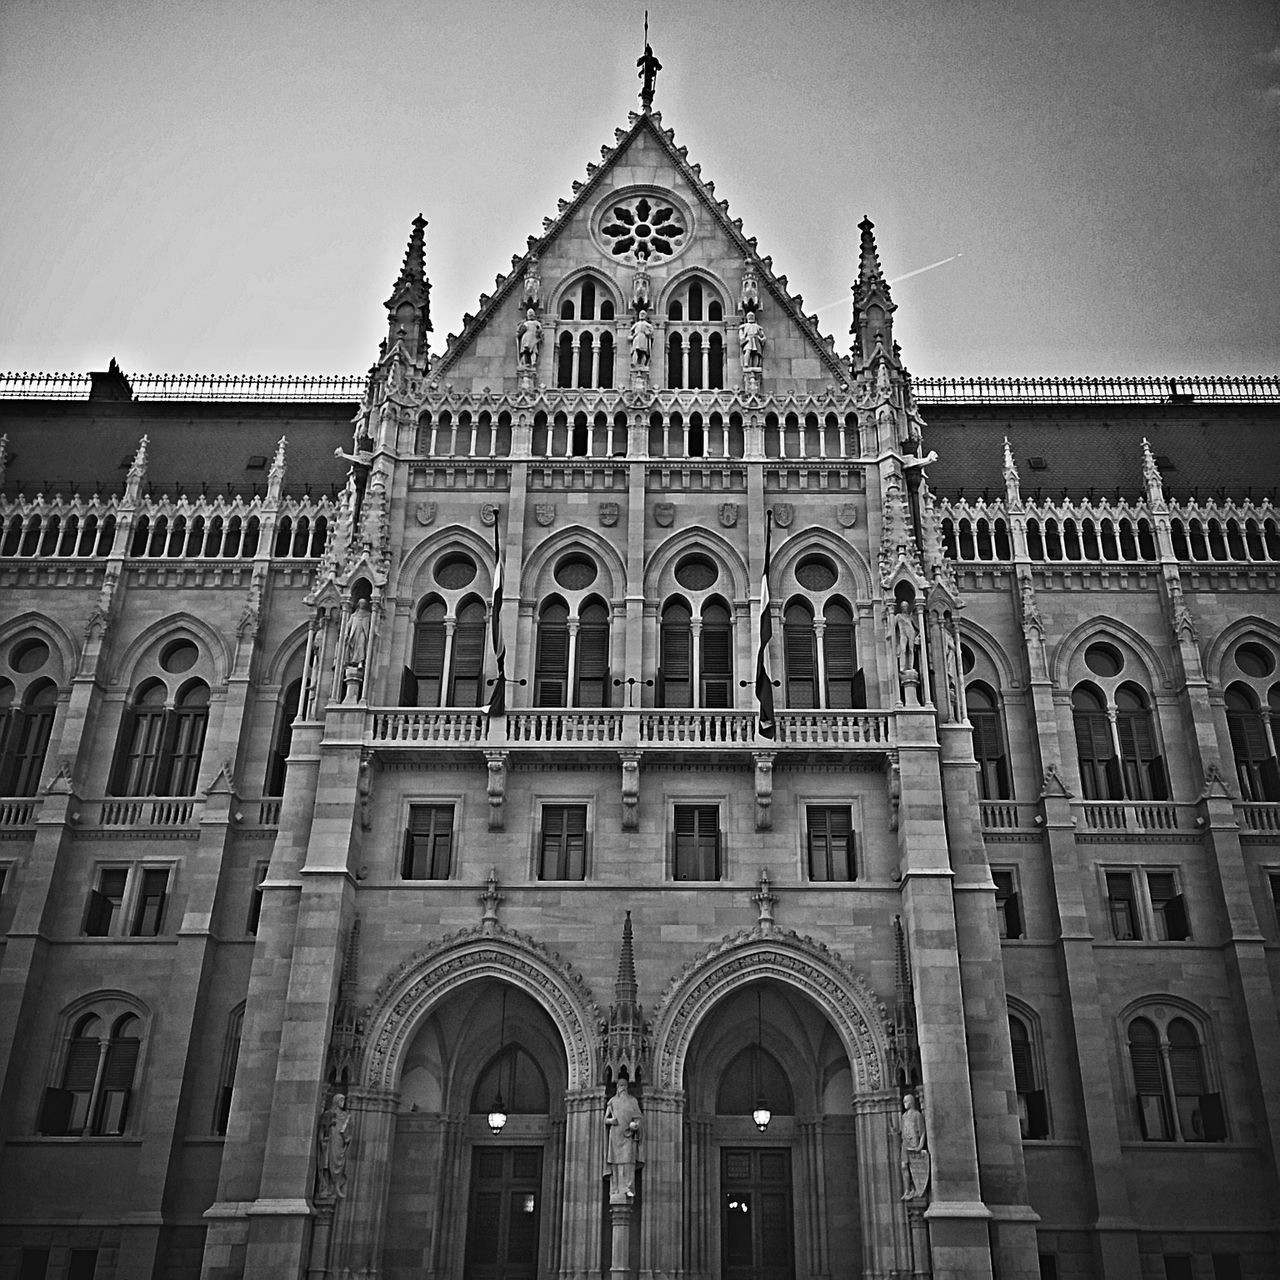 Architecture Black And White Budapest Building Exterior Built Structure Church Famous Place History Hungary Low Angle View Orszaghaz Parlament Parliament Place Of Worship Religion Sky Travel Destinations